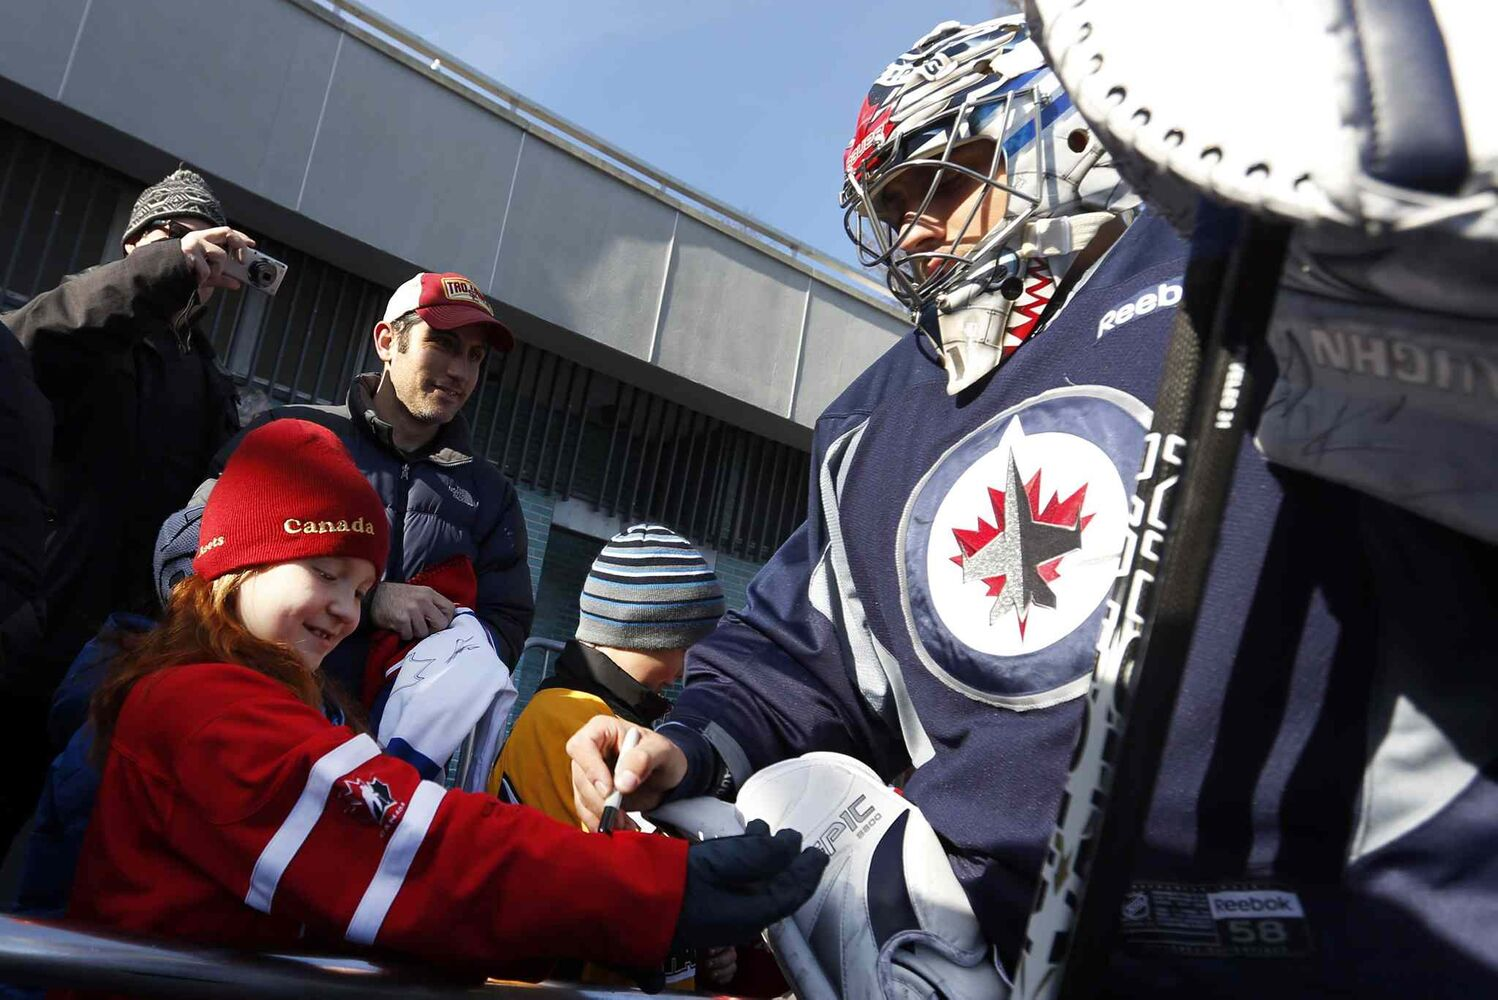 Winnipeg Jets goalie Ondrej Pavelec (right) signs an autograph for fan Alison Giebler, 8, of New York.